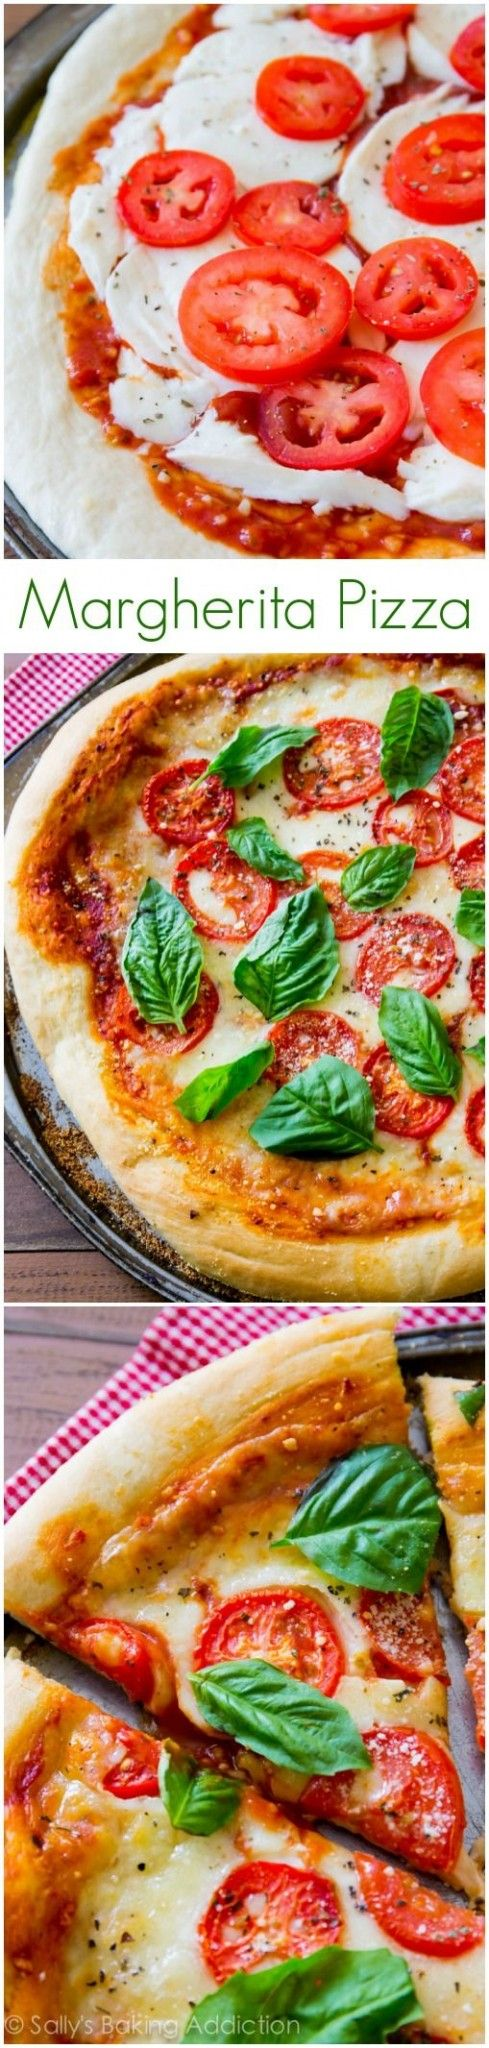 Sometimes you just cant beat fresh, simple, and classic Homemade Margherita Pizza. And this recipe is the BEST!   Read Recipe by jacksonbrownefr